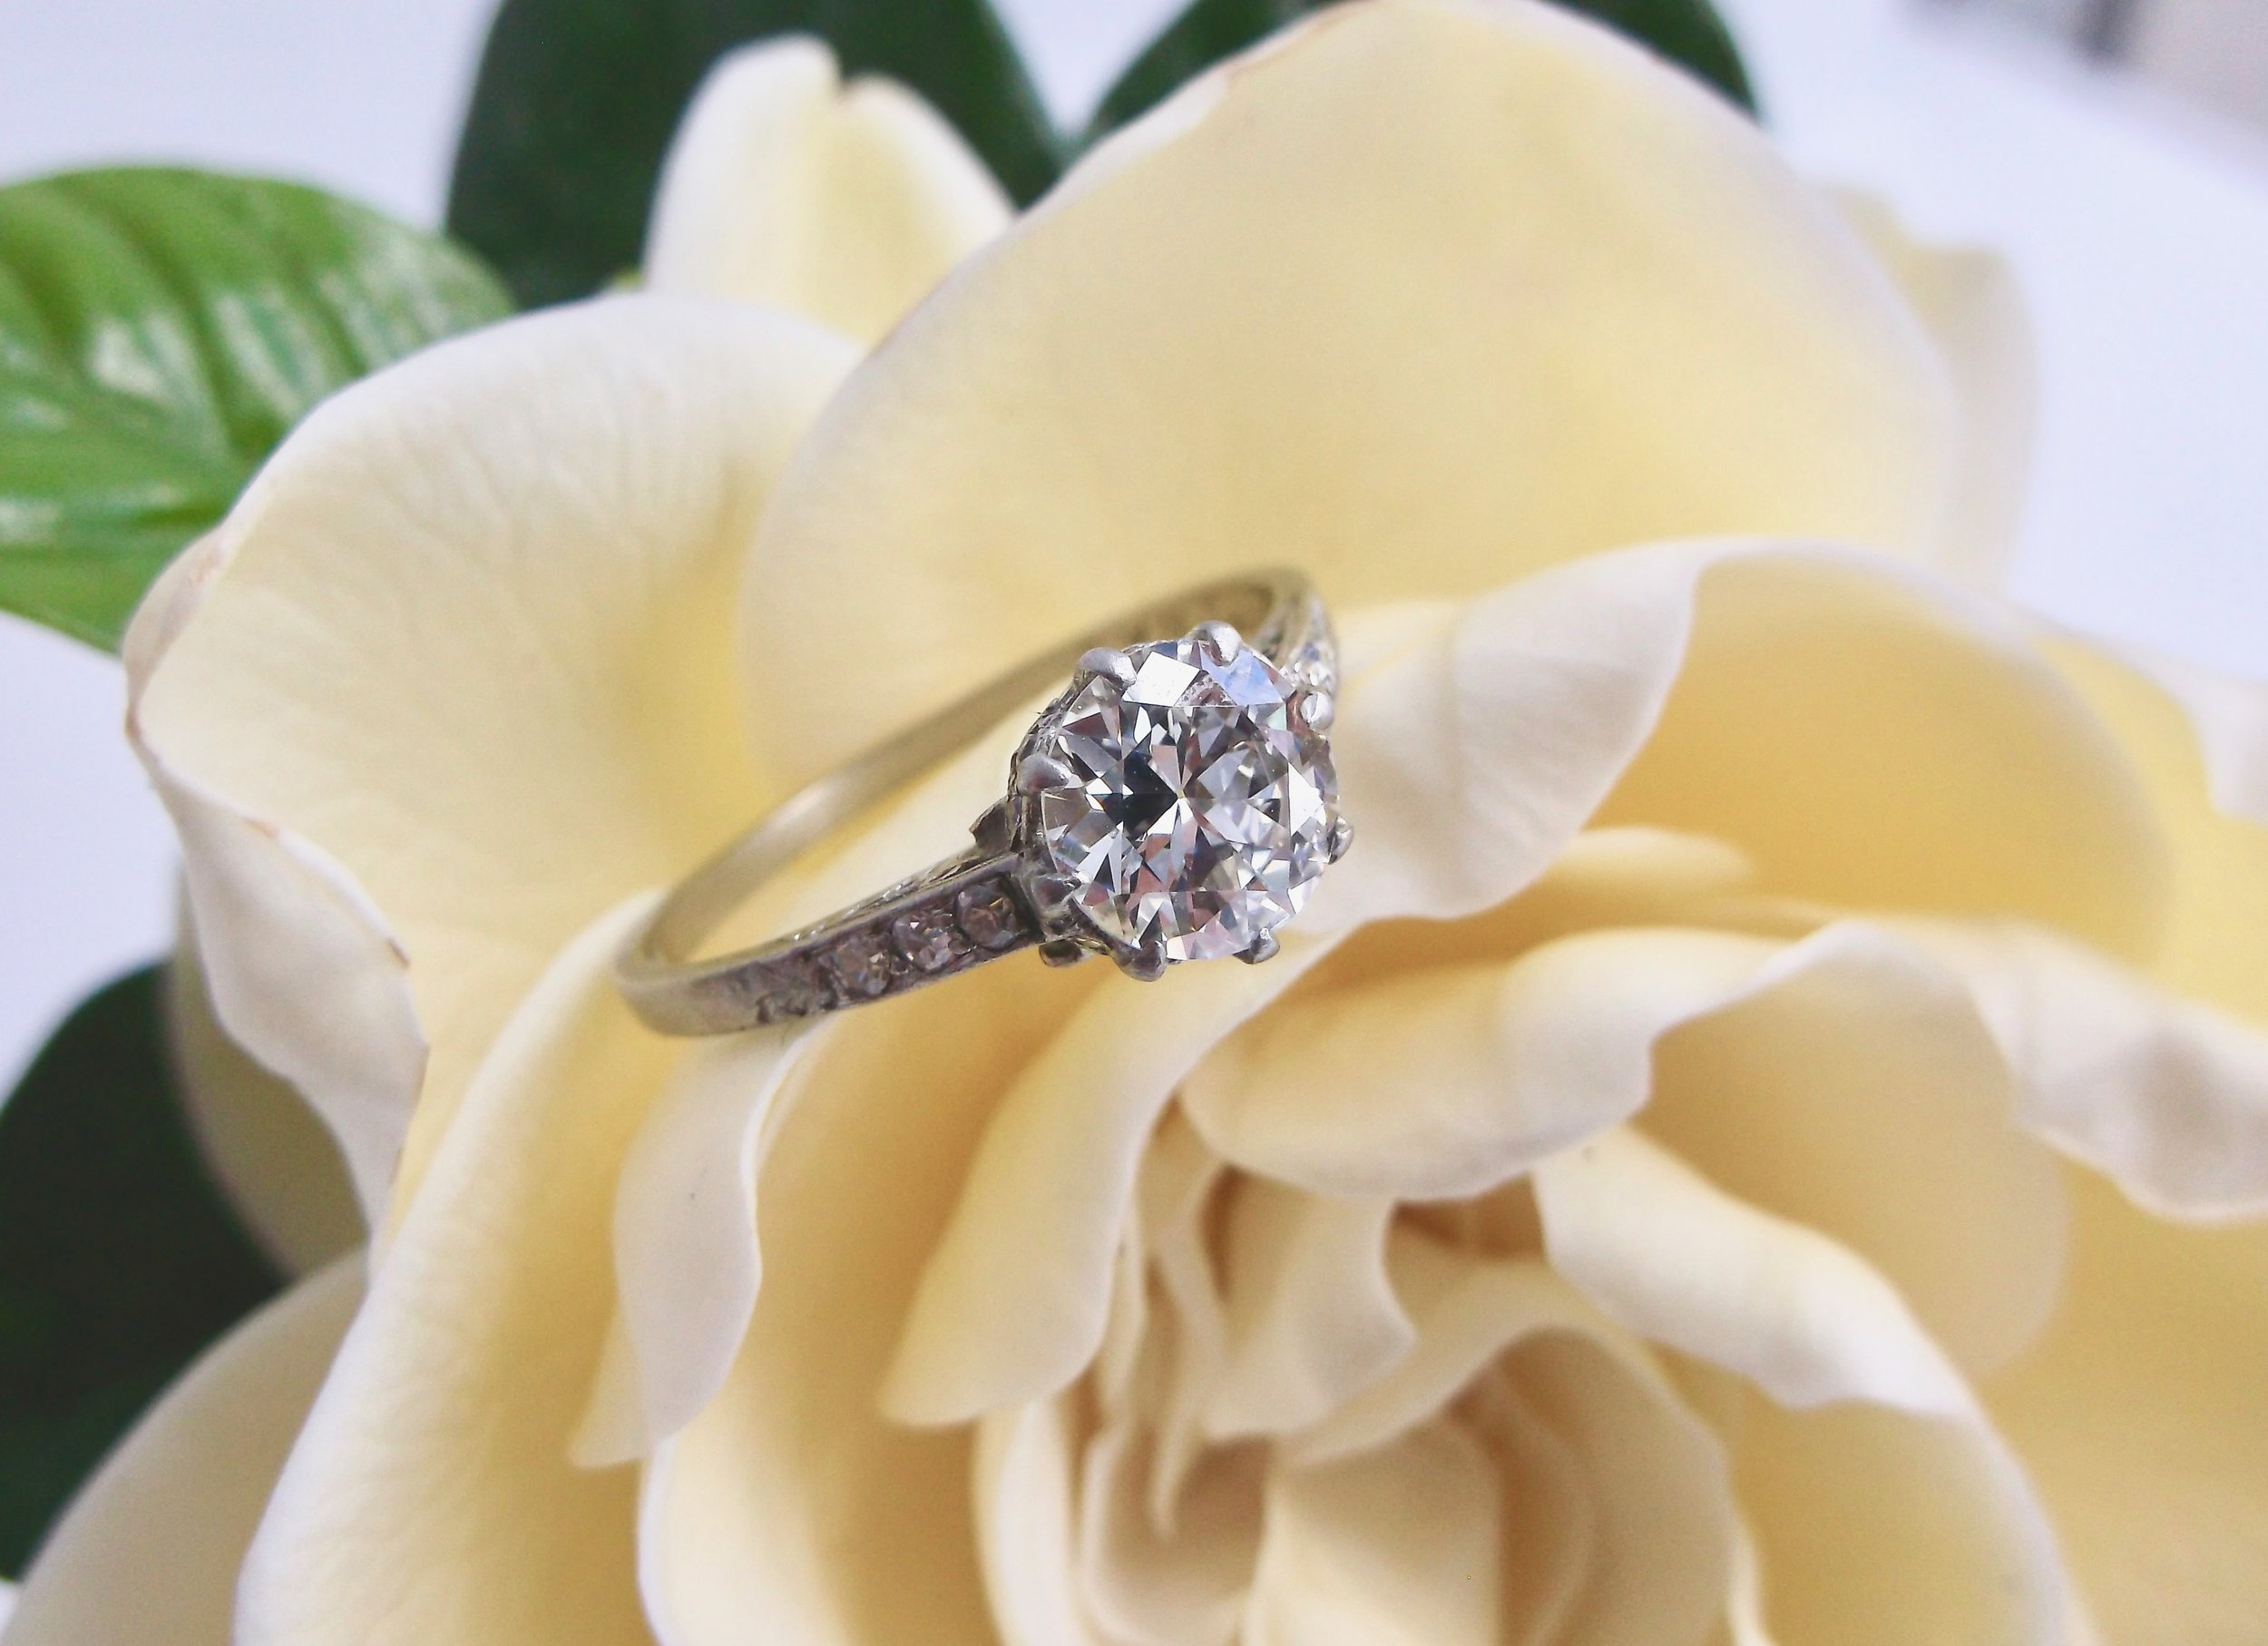 Simplicity from the top leaves space for lots of gorgeous details underneath! 1920's Art Deco diamond and platinum ring featuring a 0.97 carat Old European cut diamond. See the details in all their glory  HERE